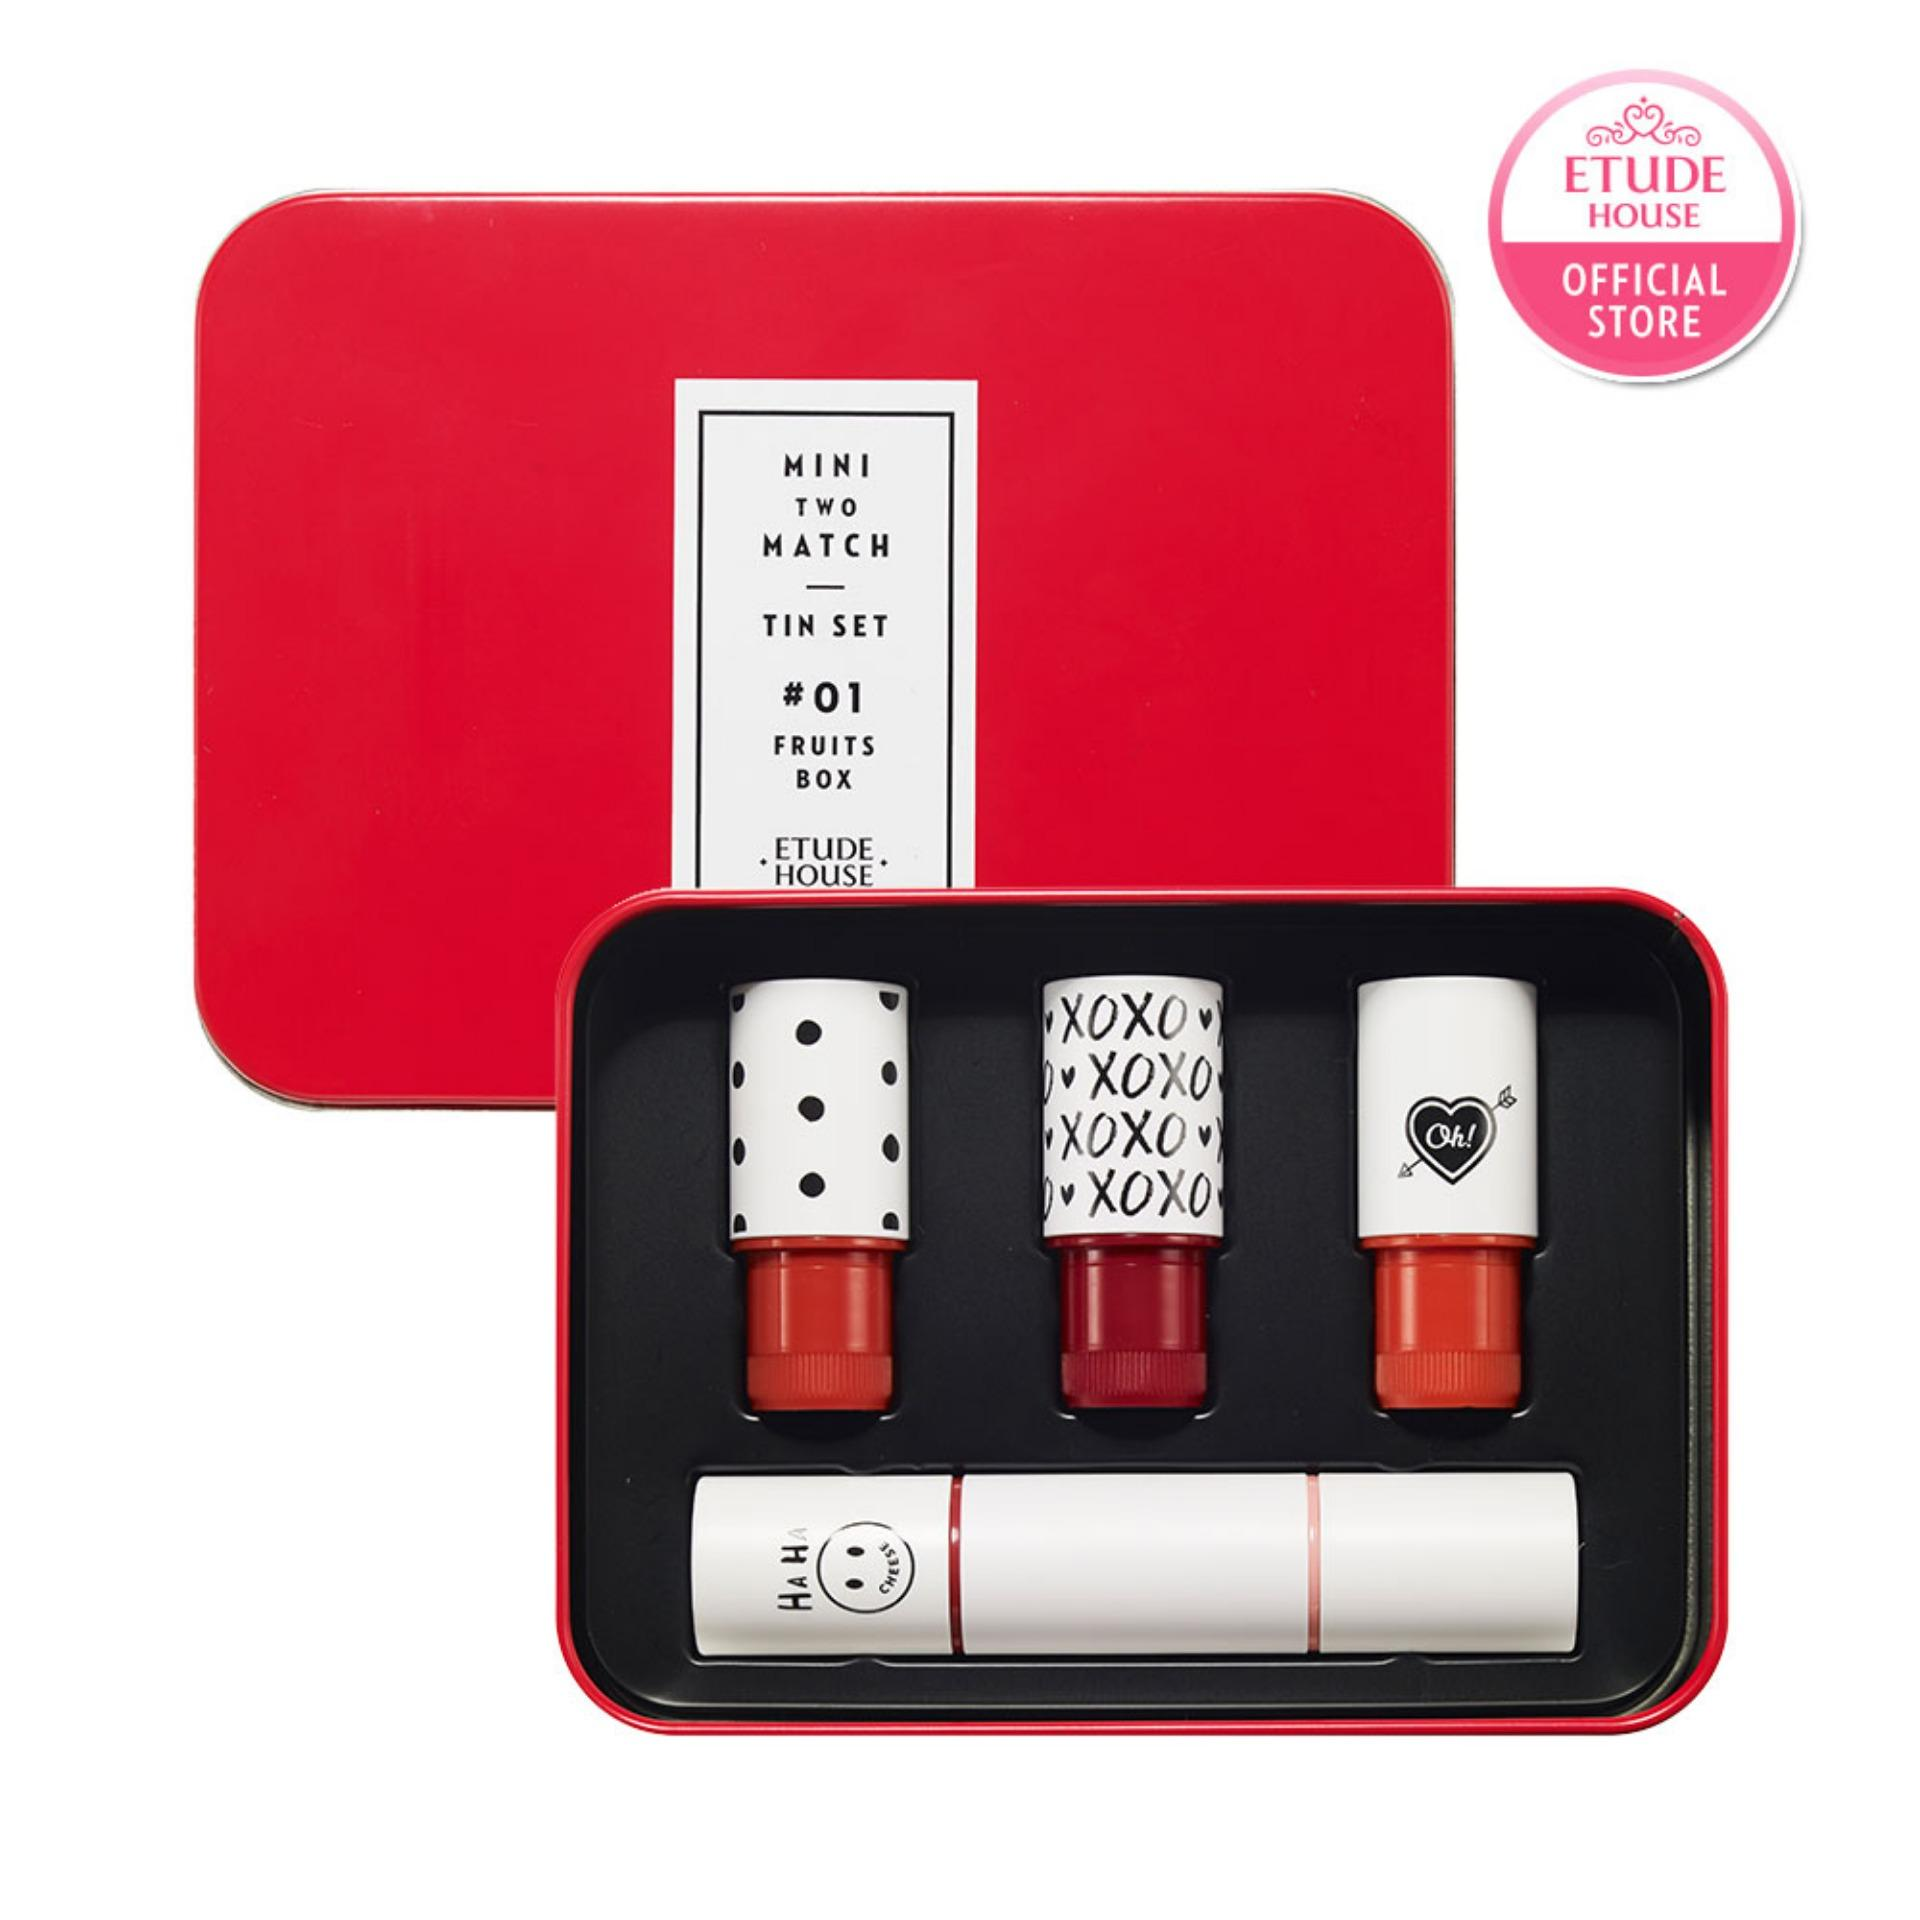 Buy Etude House Mini Two Match Tin Set 01 Fruits Box Etude House Online